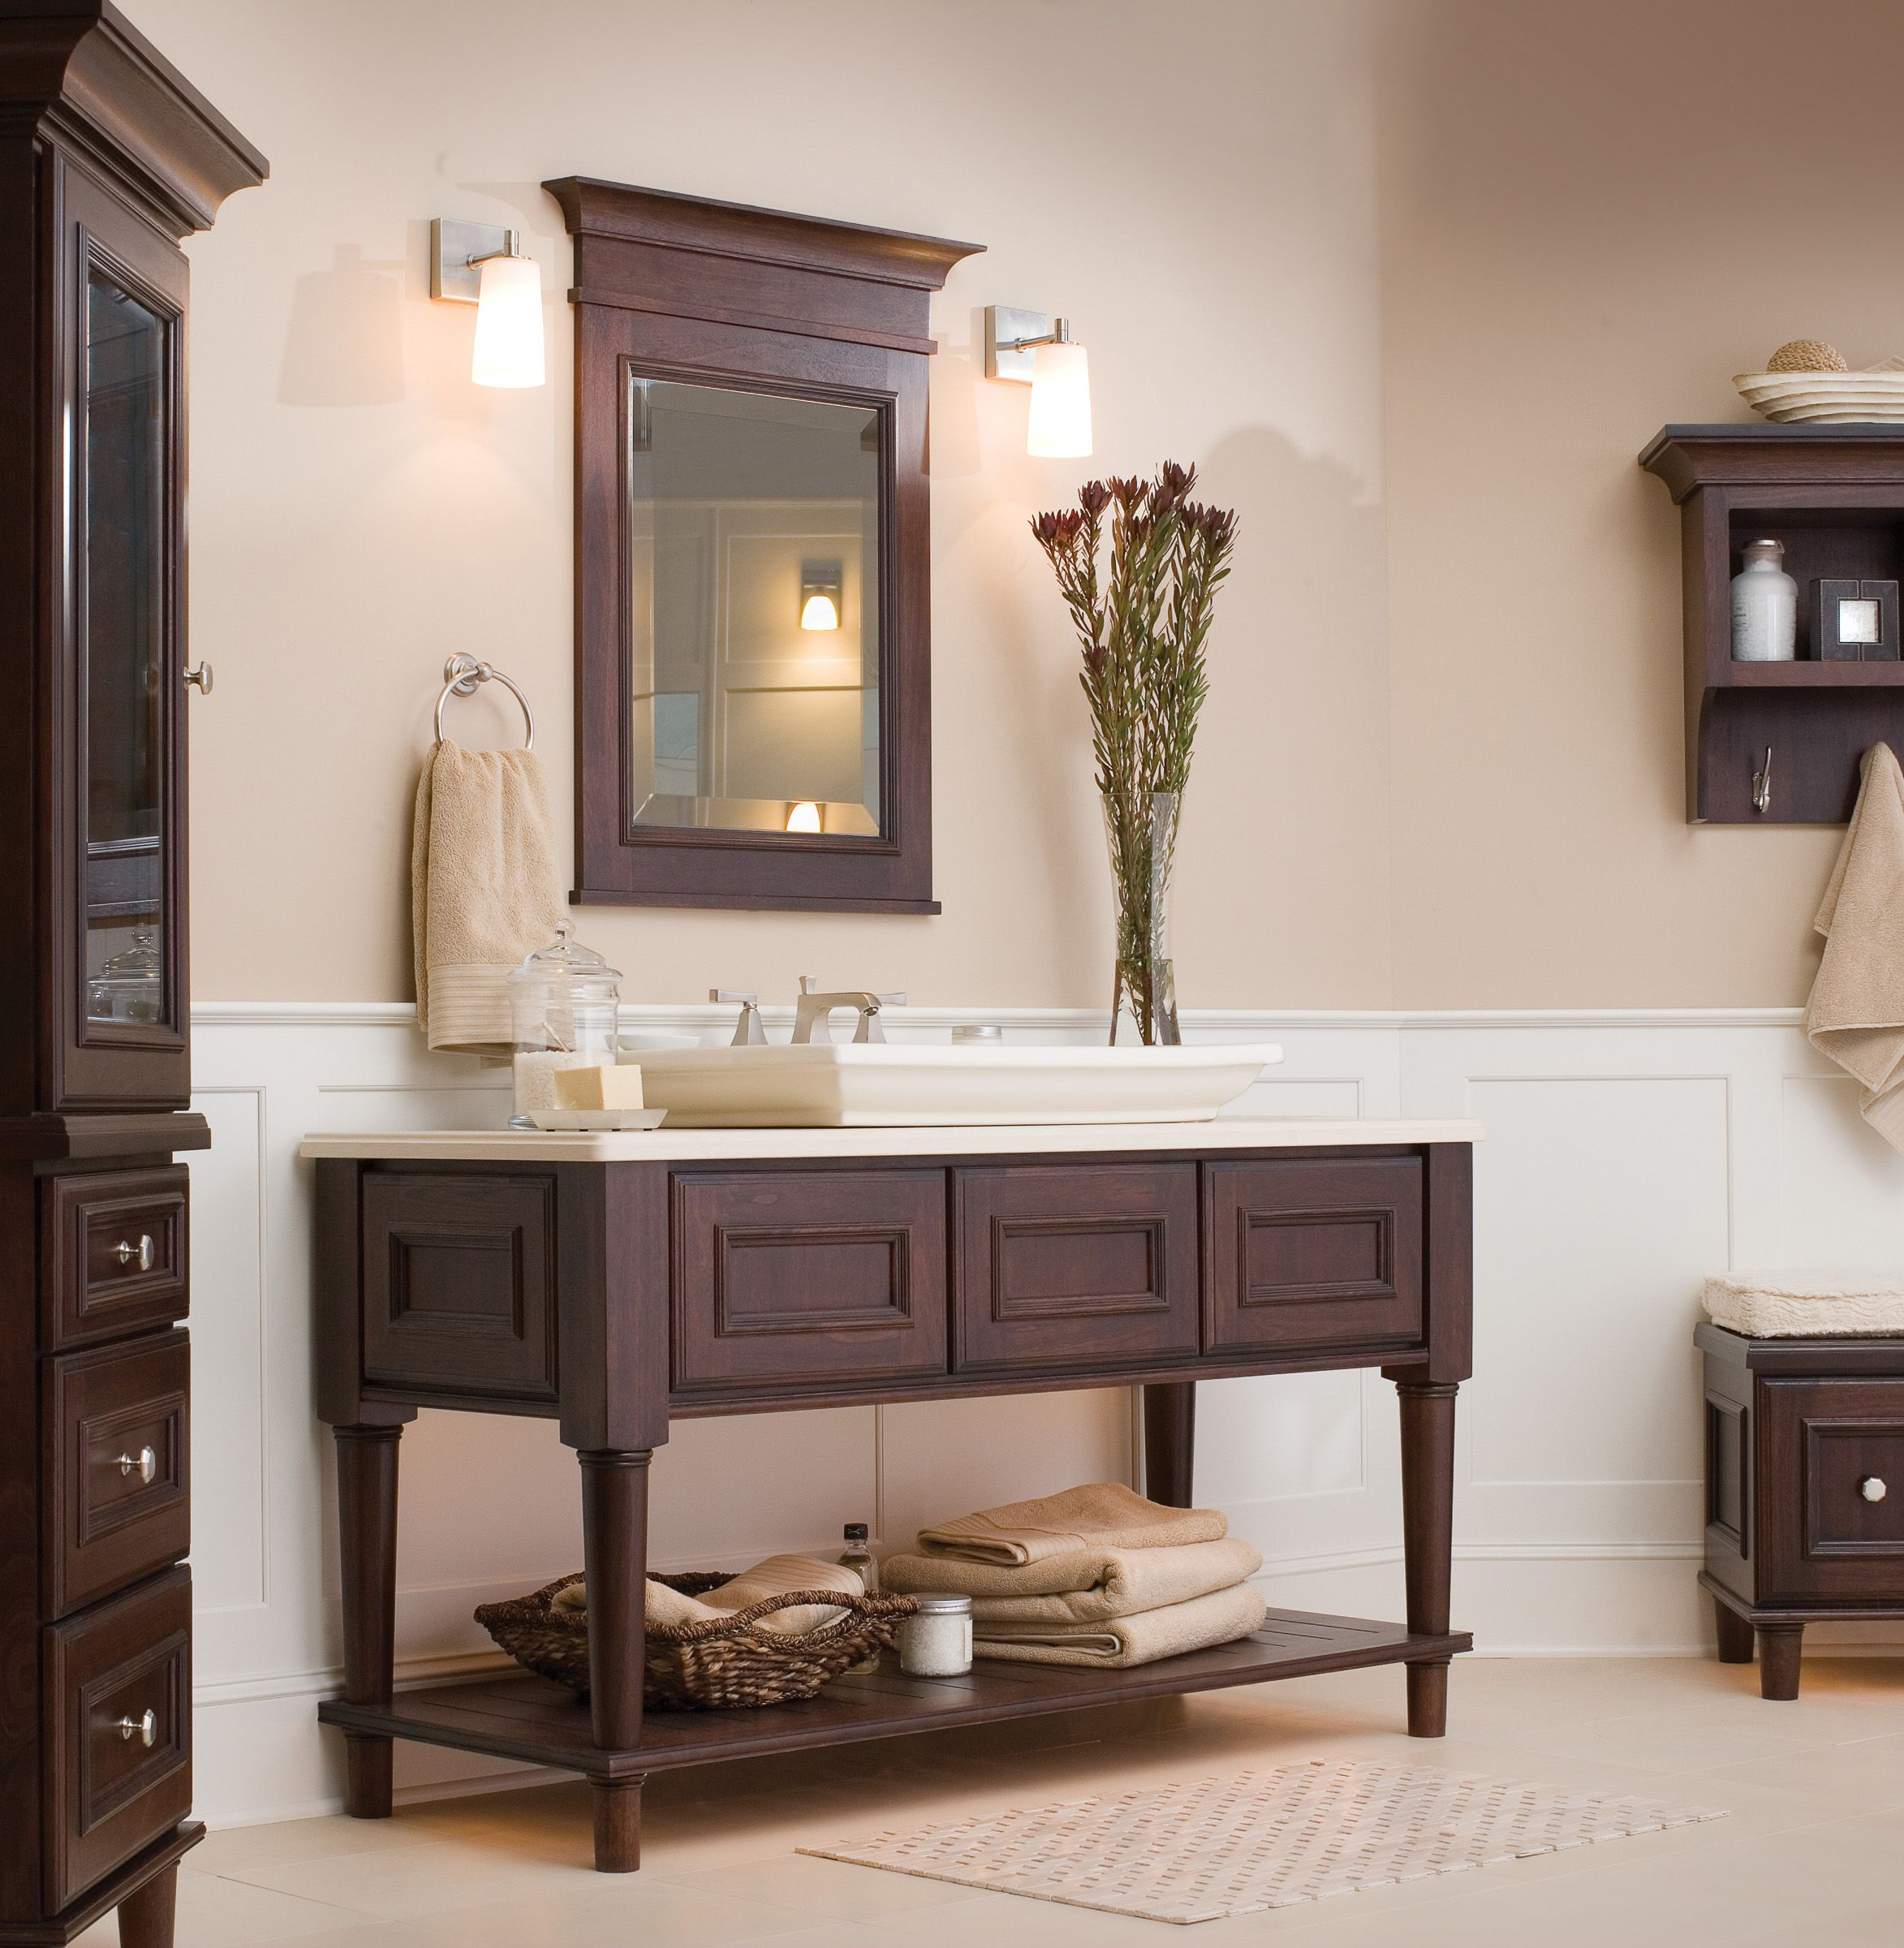 Dura Supreme Crestwood Cabinetry Shown With St Augustine Cabinet - Bathroom remodel st augustine